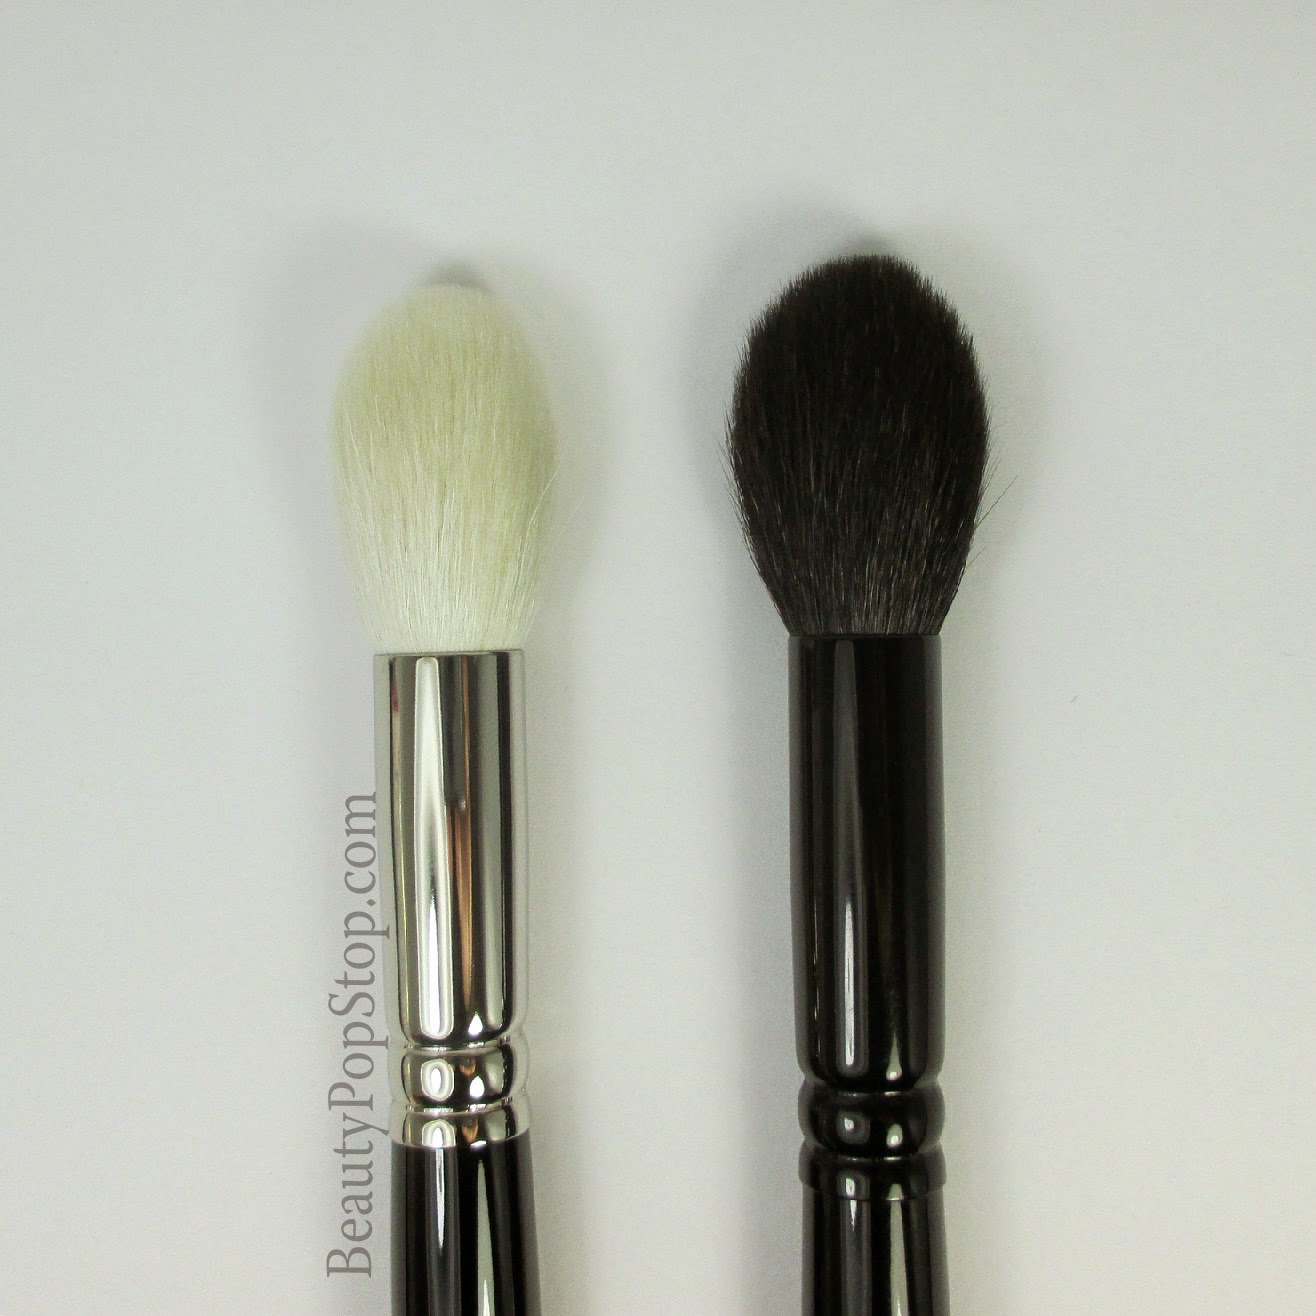 hakuhodo J5521 versus Wayne Goss 02 japanese makeup brush comparison